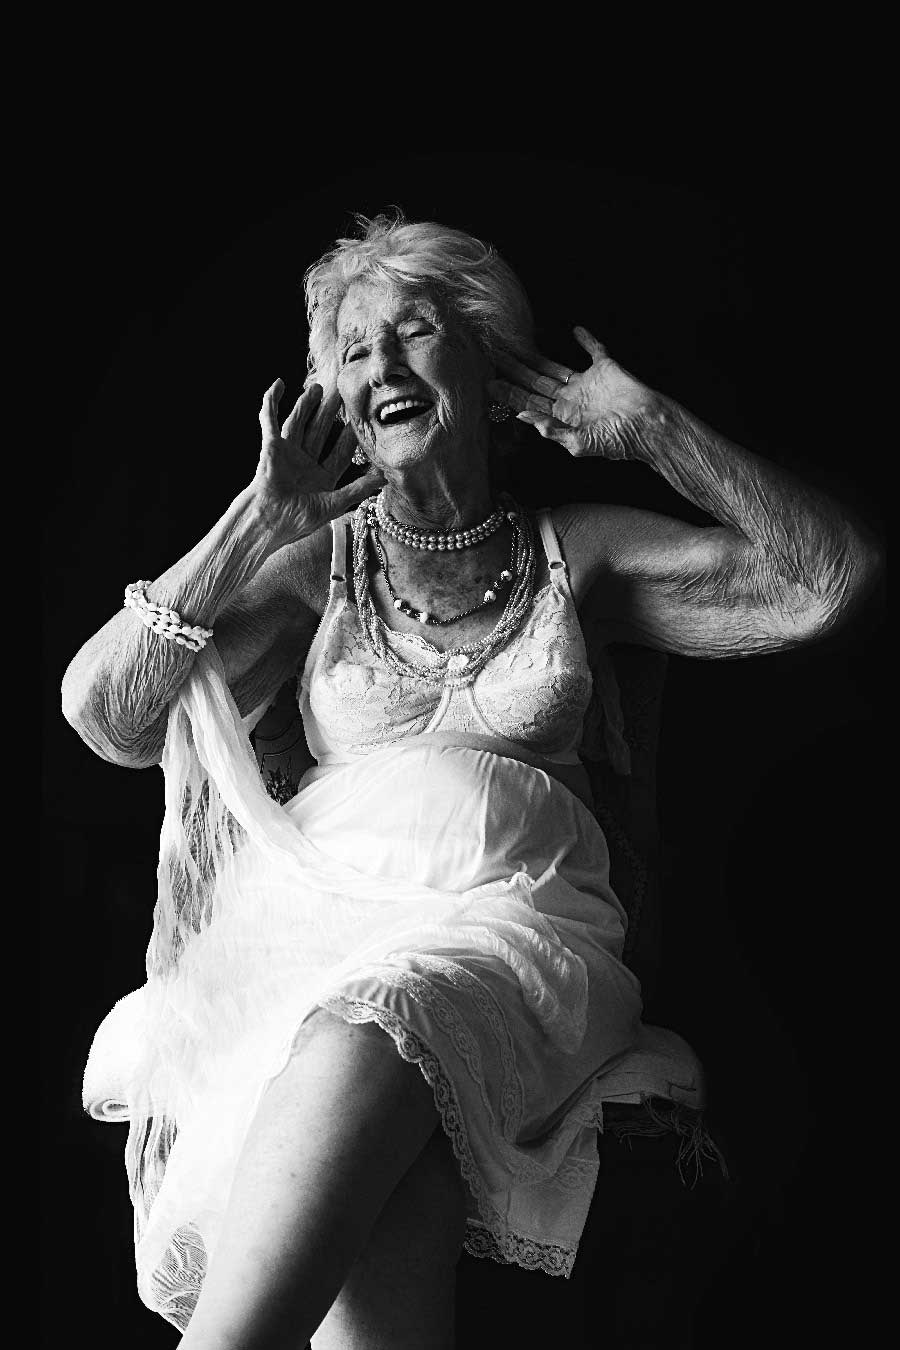 The Art of Aging by Arianne Clément